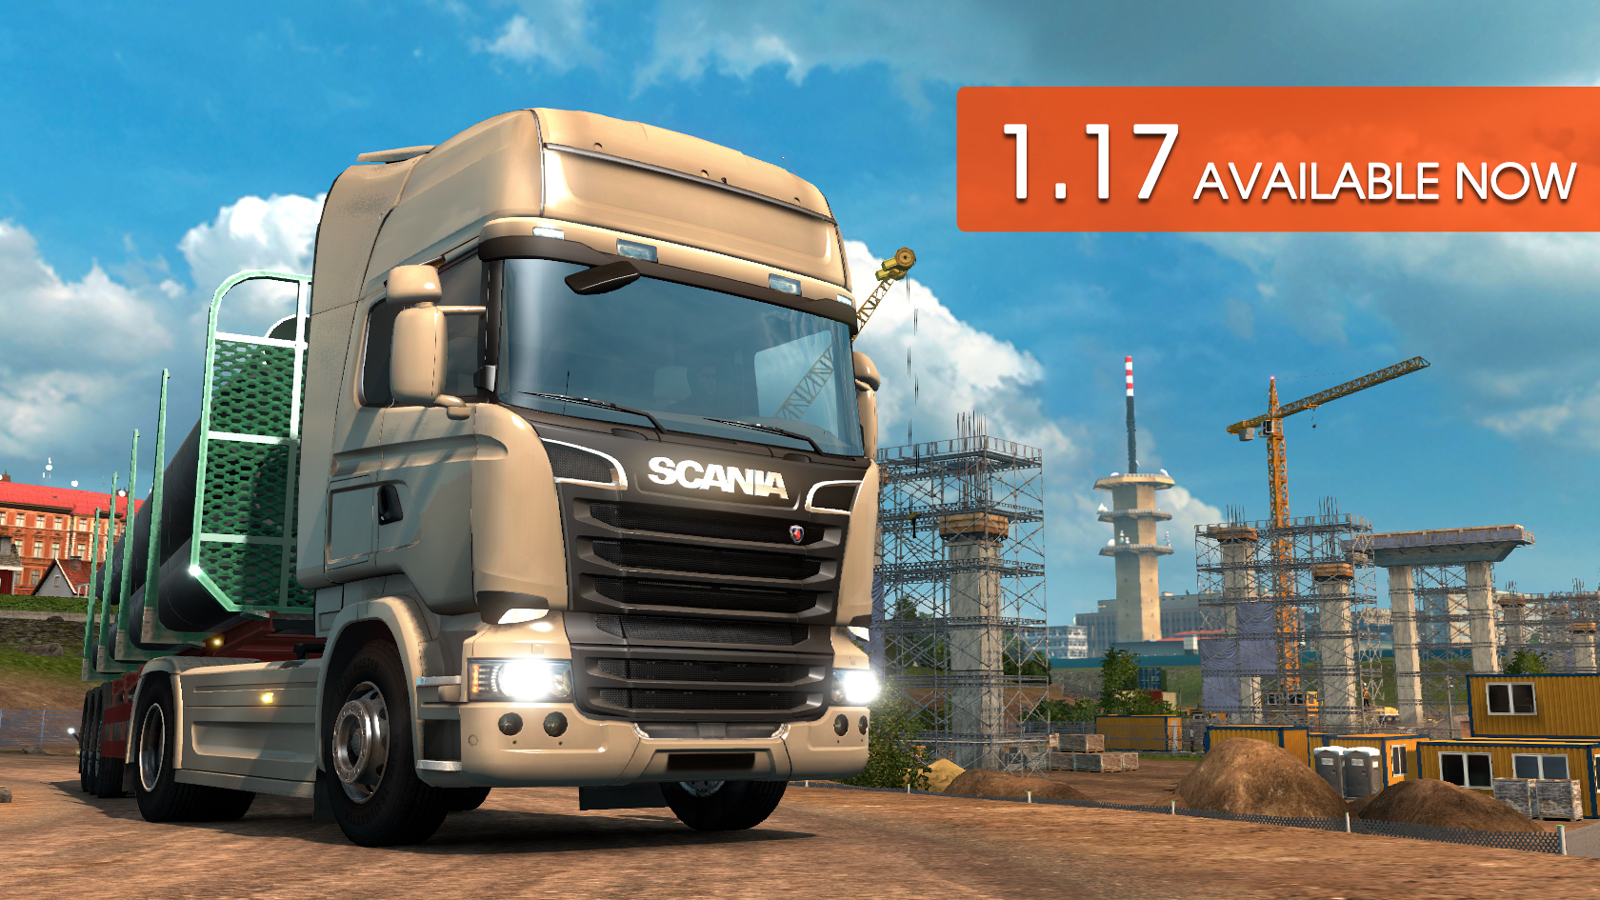 Euro truck simulator 2 1 17 update is available now